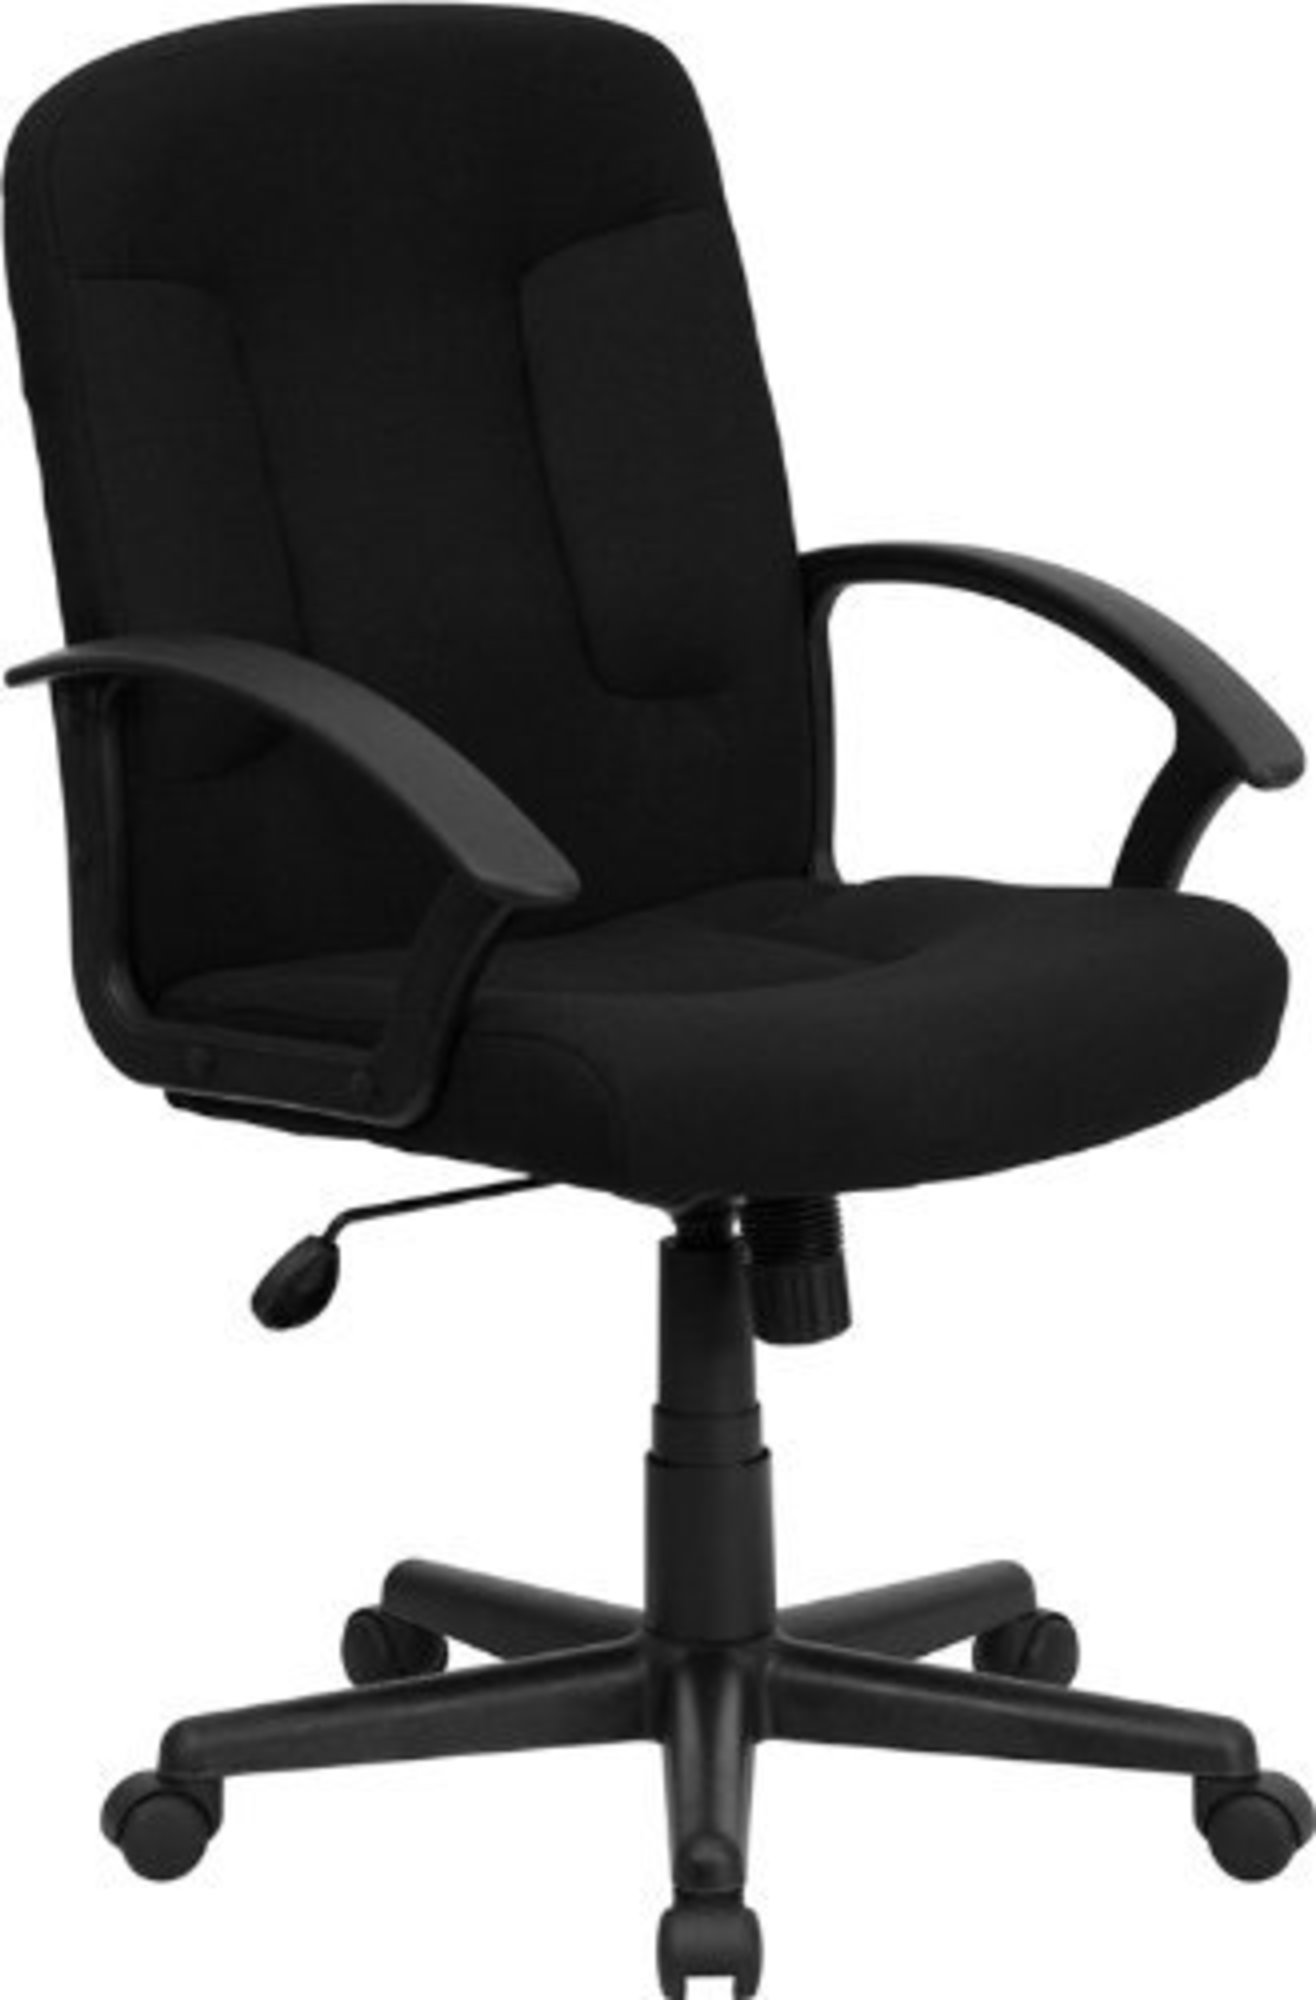 Computer Chair Clipart.